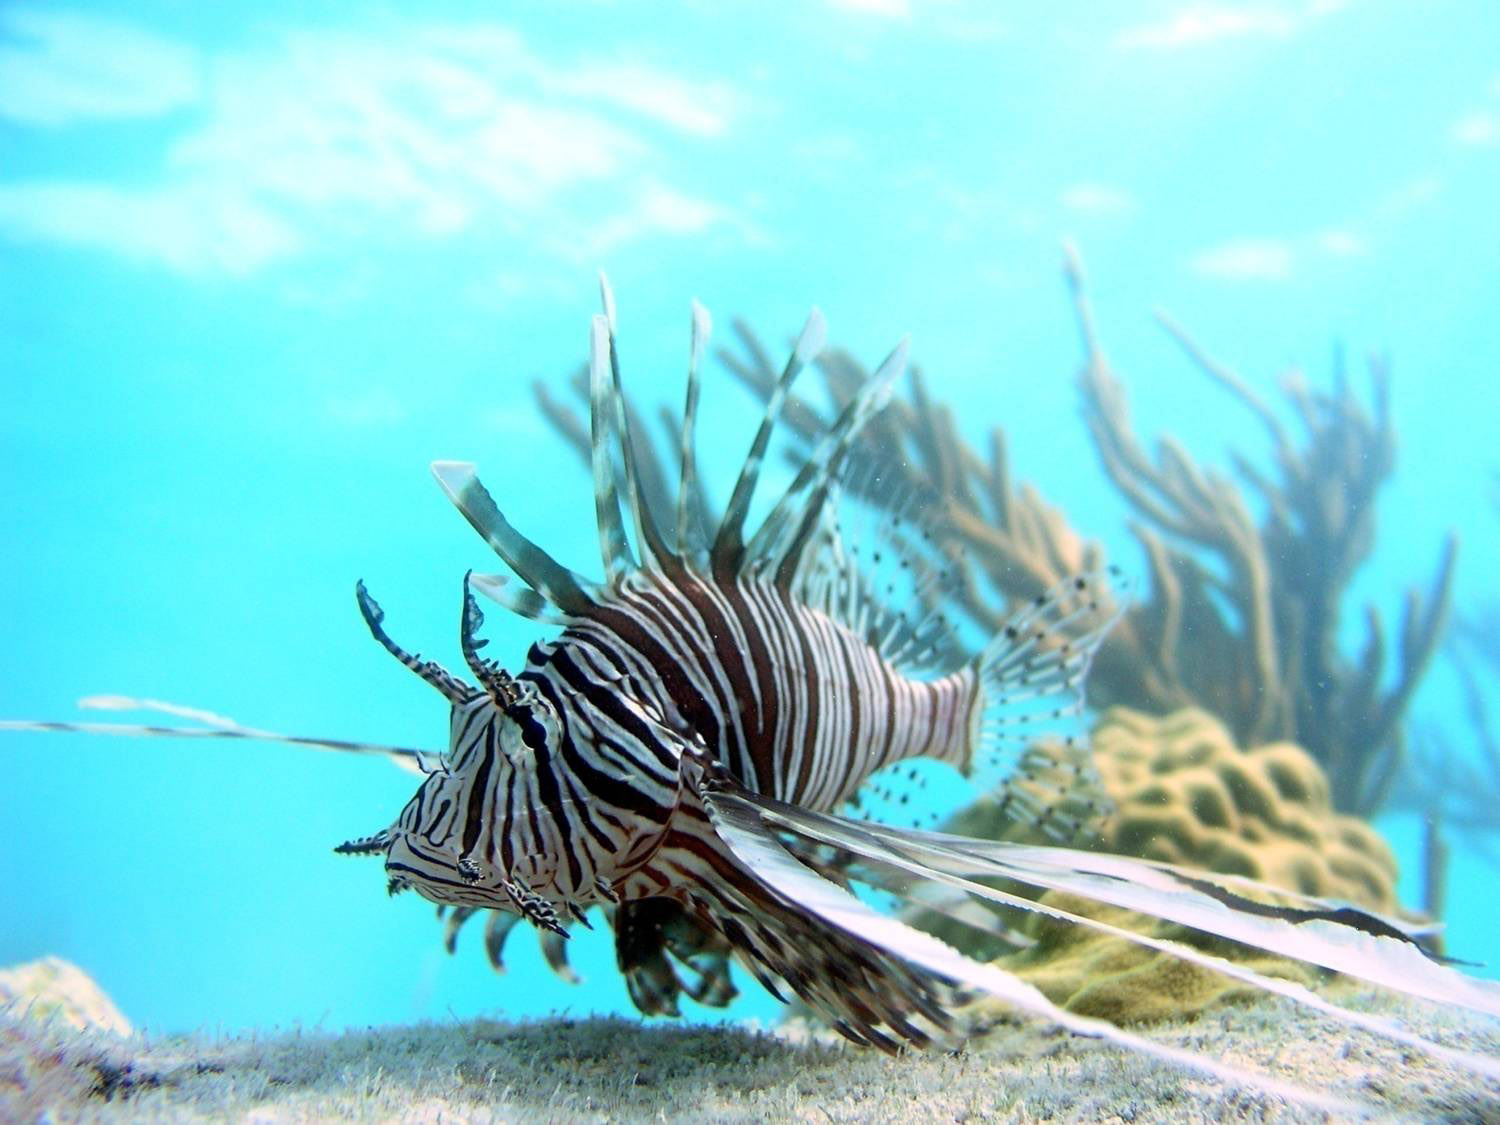 Bird Flower and Fish: Lionfish